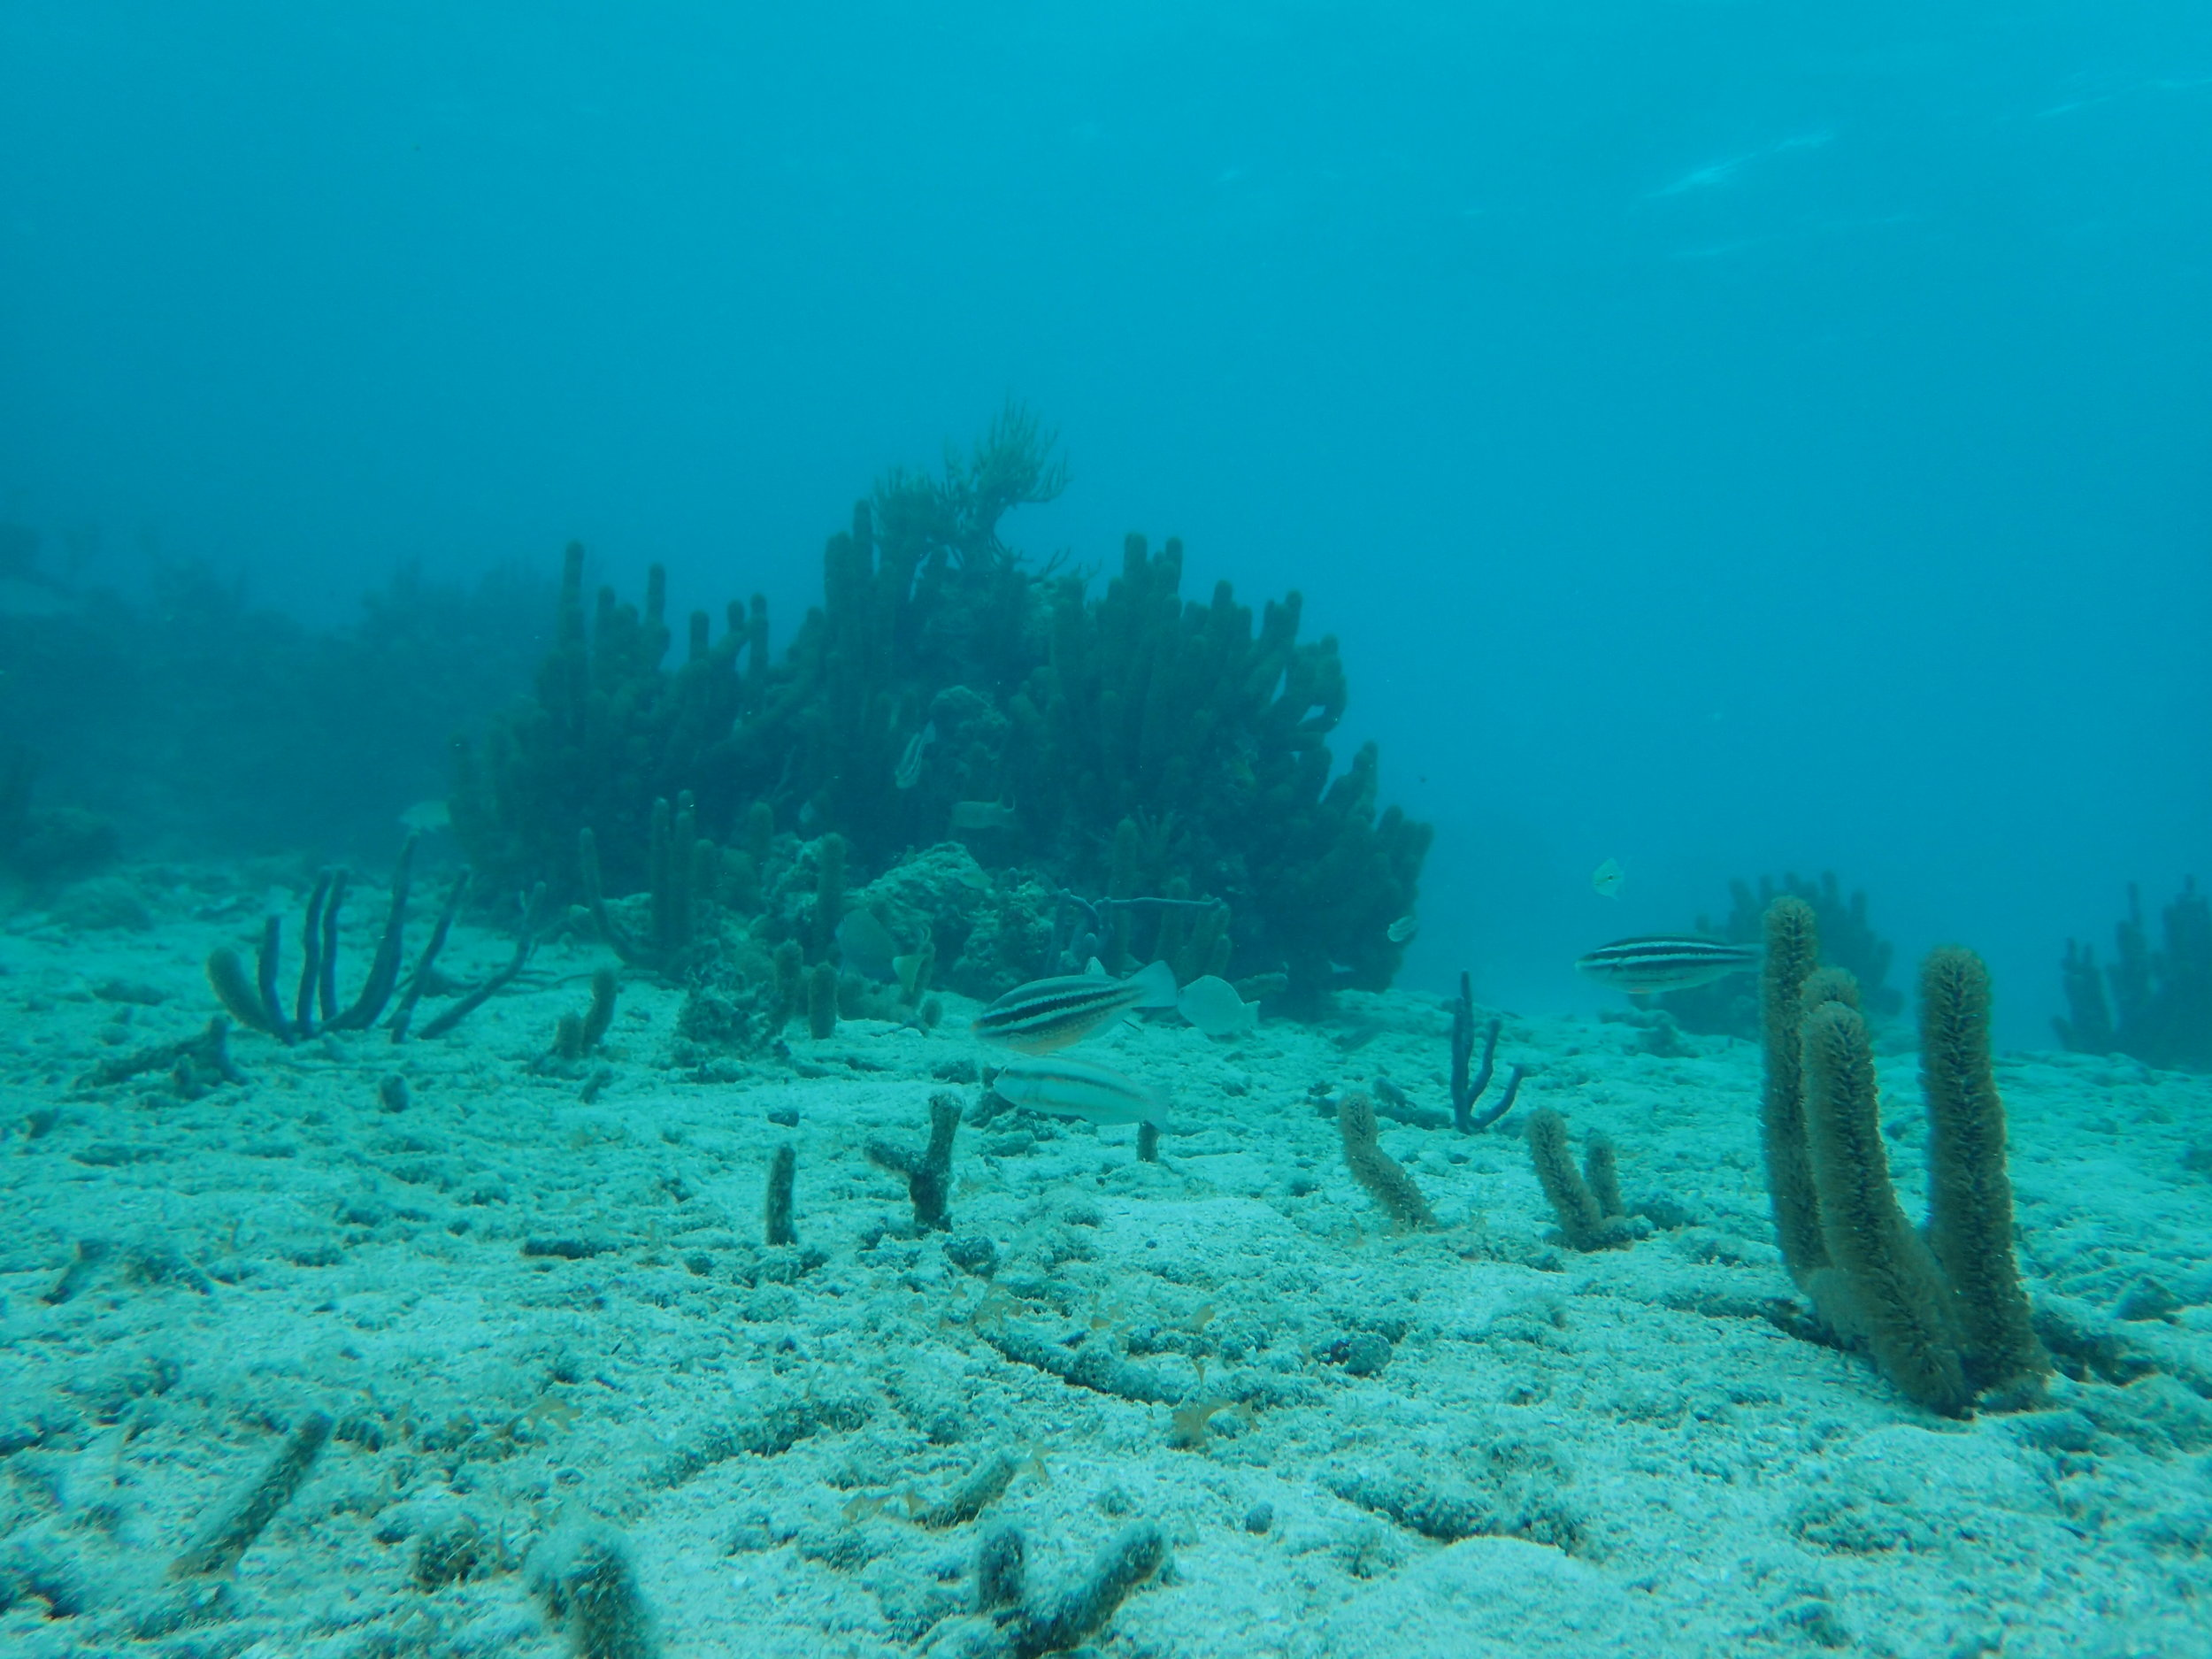 Coral and tropical reef fish abound in the biodiverse waters of Belize